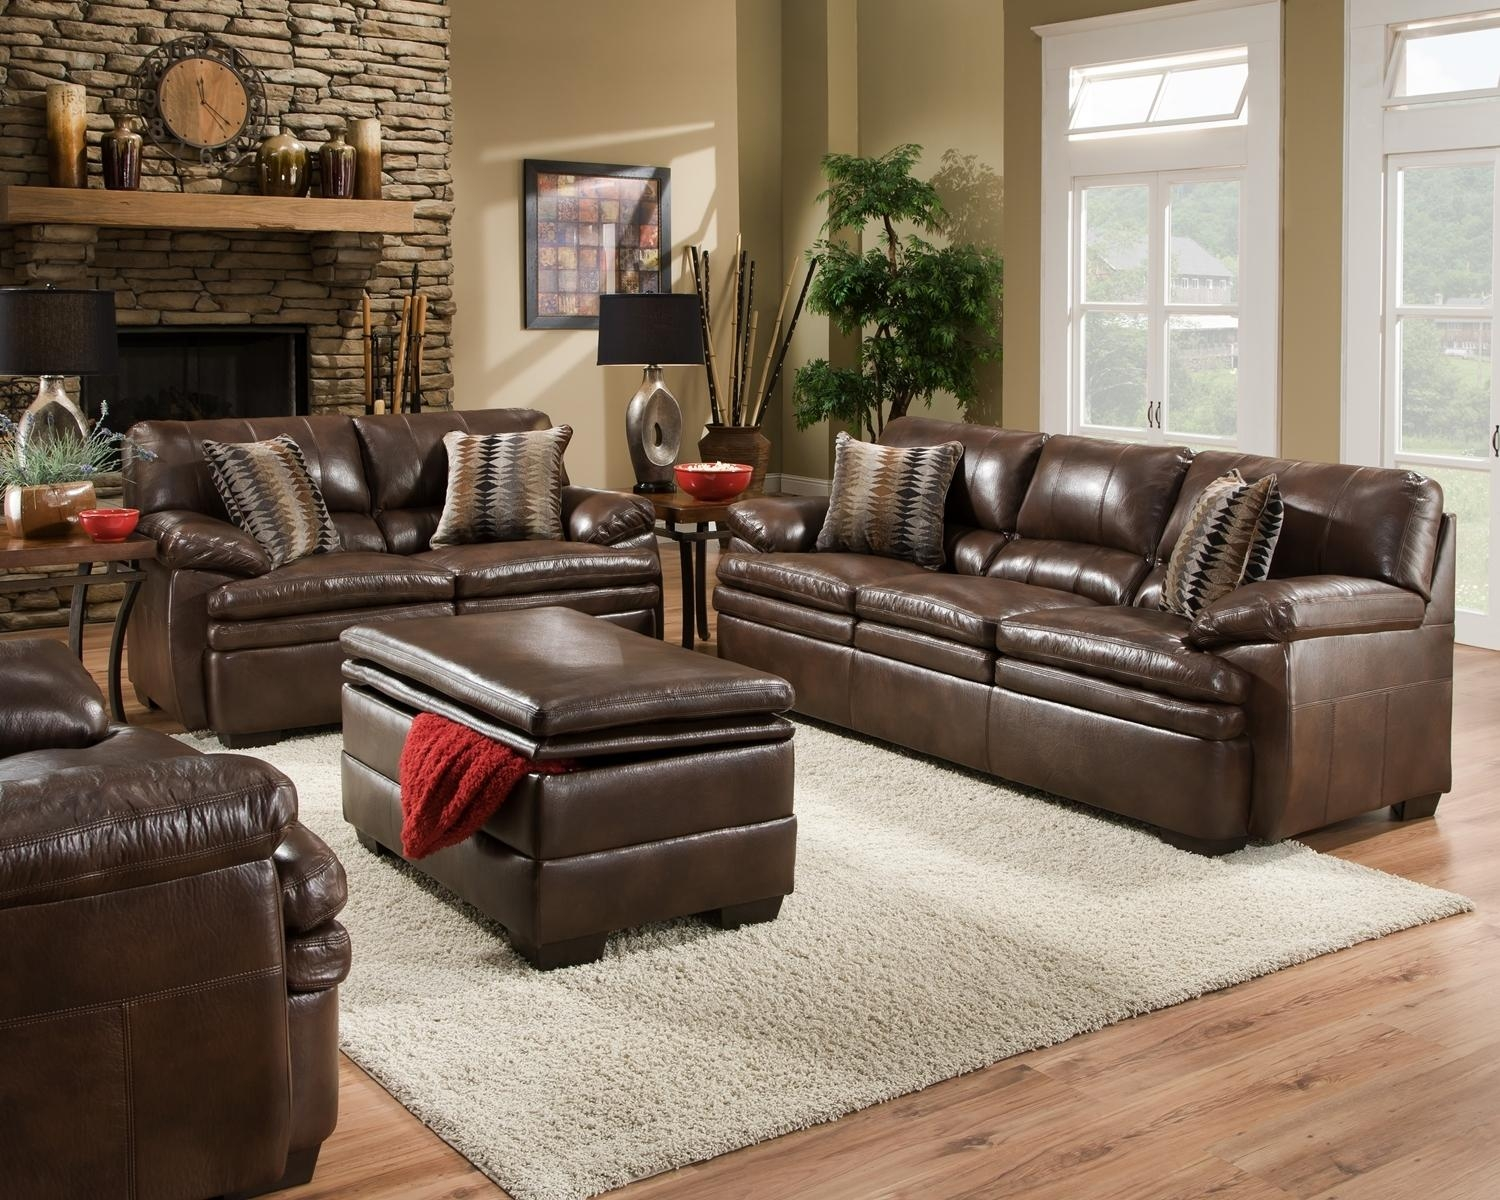 Leather Sofa Living Room Within Living Room Sofa Chairs (Image 11 of 20)